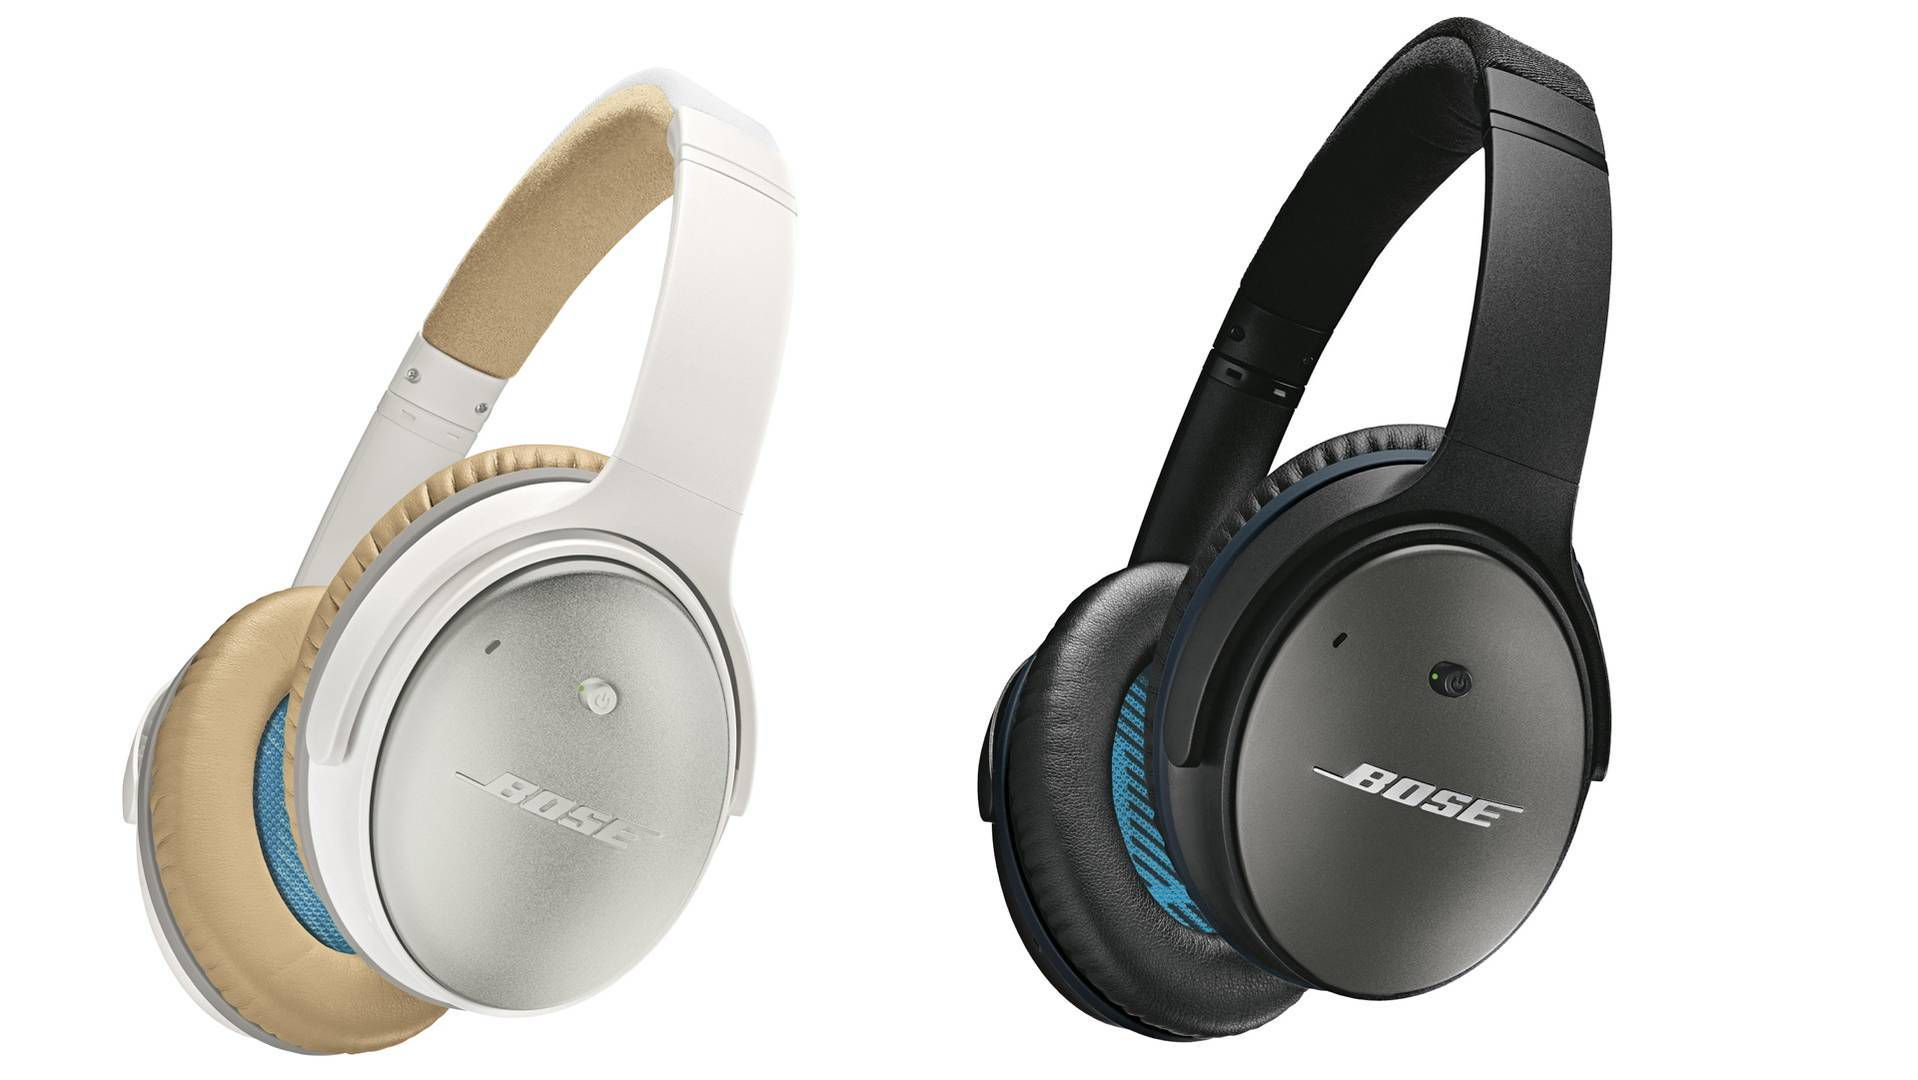 Bose QuietComfort 25 Acoustic Noise Cancelling